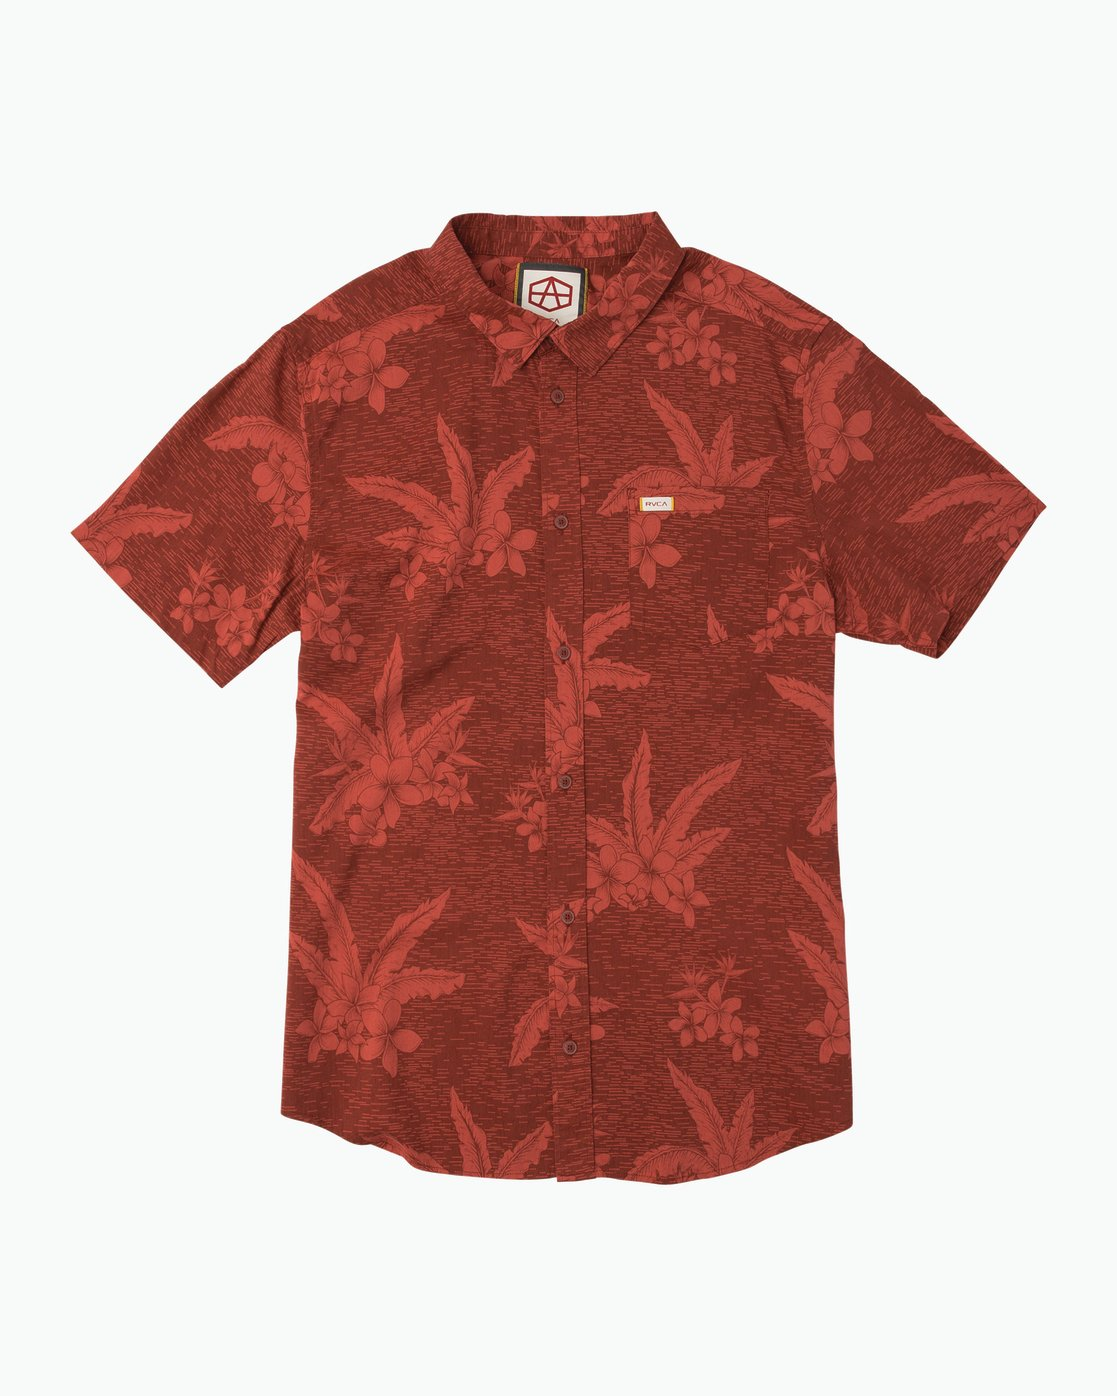 0 Andrew Reynolds Hawaiian Button-Up Shirt Red M509QRAR RVCA